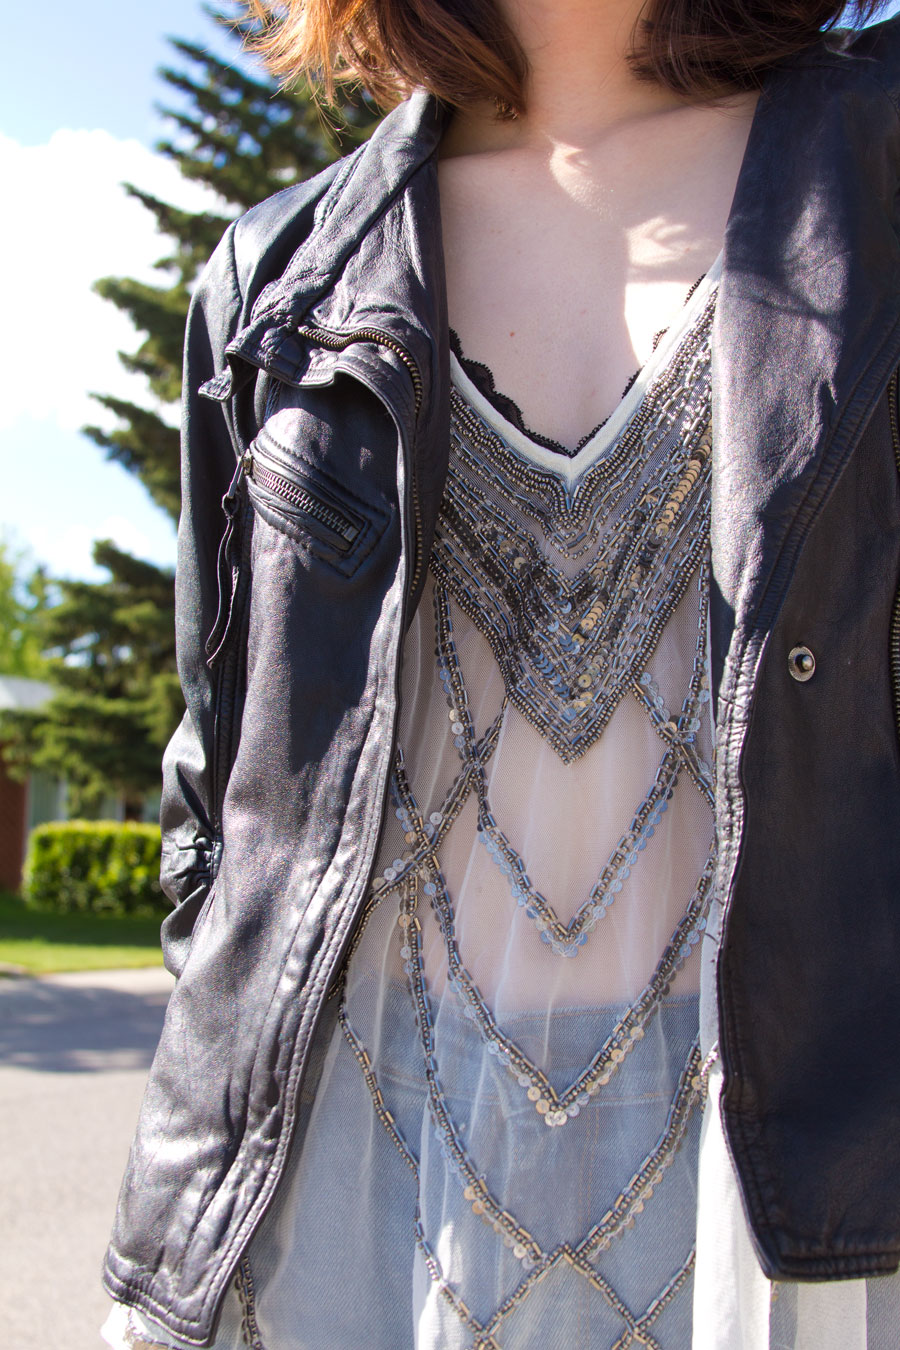 embellished top, sheer top, leather, botkier, danier, urban outfitters, kimchi blue, res denim, cat eye sunglasses